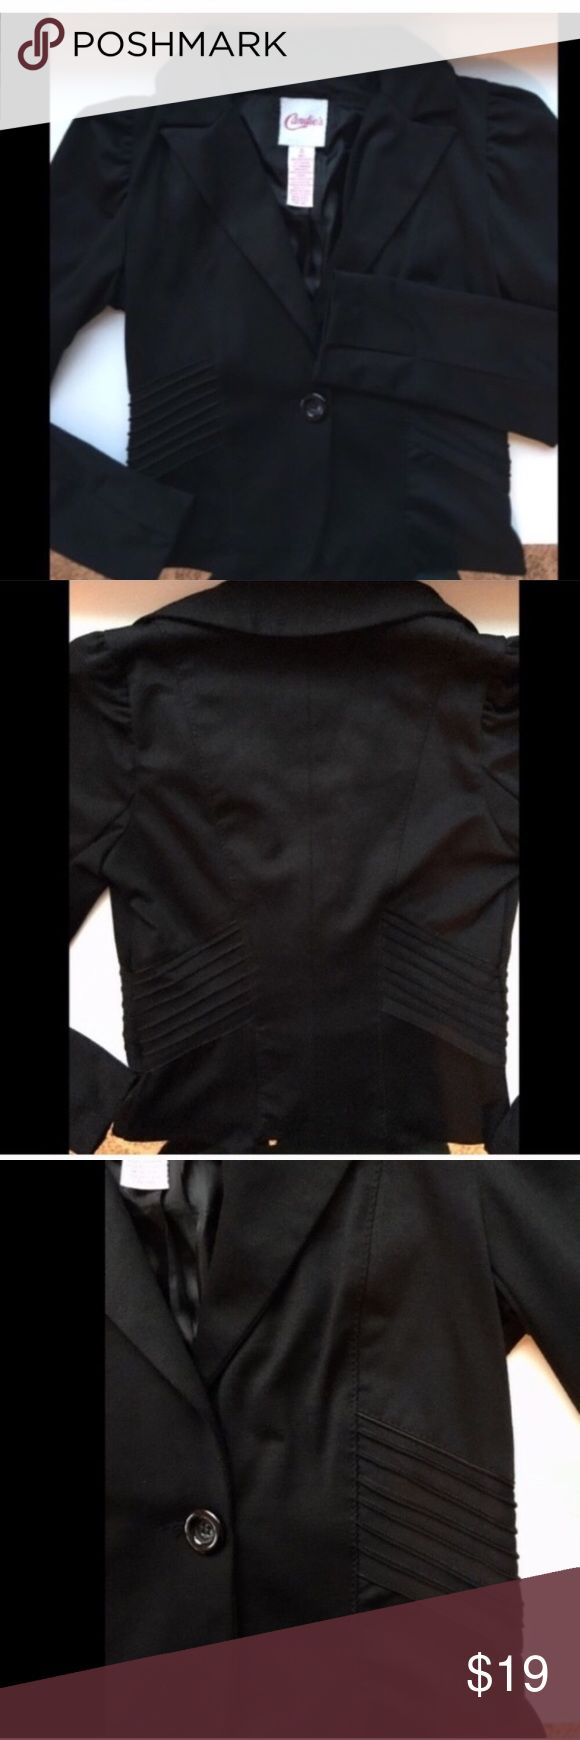 Candies black button up jacket This classy black jacket will complete any outfit! Whether it goes over your favorite dress or worn with jeans and heals. It has only been worn a couple times and looks brand-new. Jacket has a collar and slightly puffed sleeves with one large button to close off the front. Material is 78% polyester, 17% rayon 5% spandex. Contrast 100% polyester lining. Candies Jackets & Coats Blazers